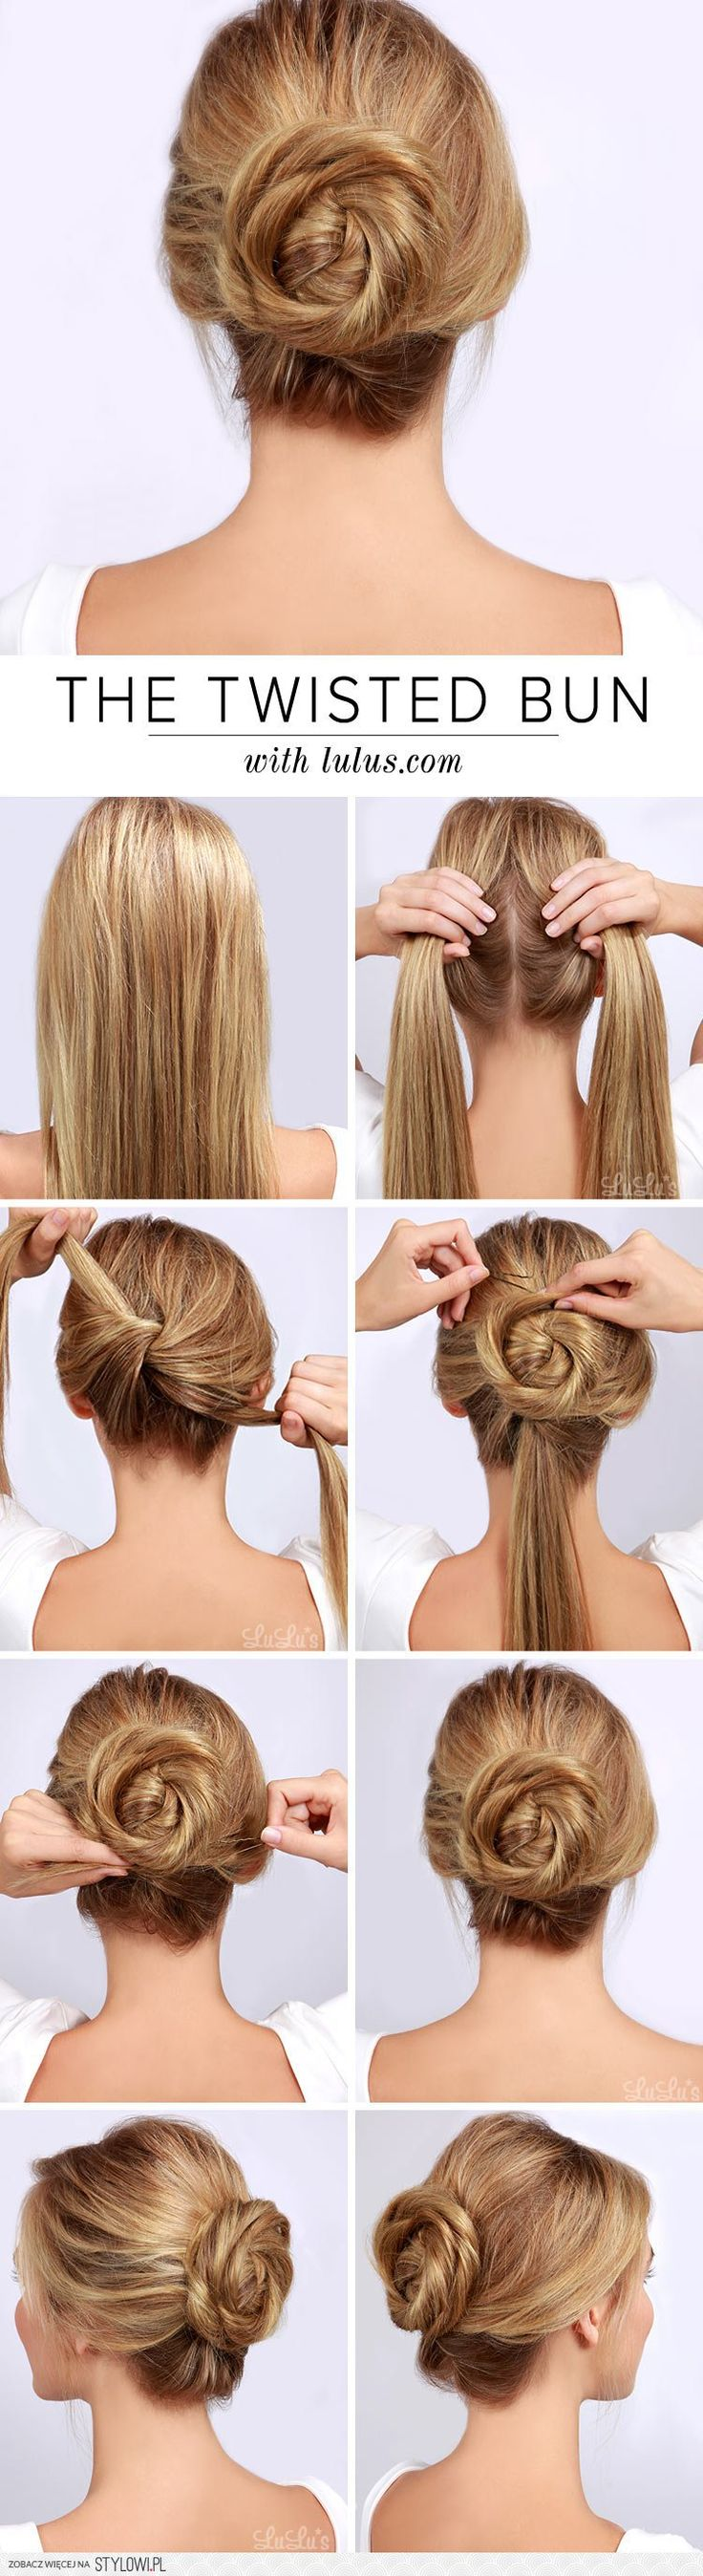 best hair images on pinterest hair cut gorgeous hair and long hair